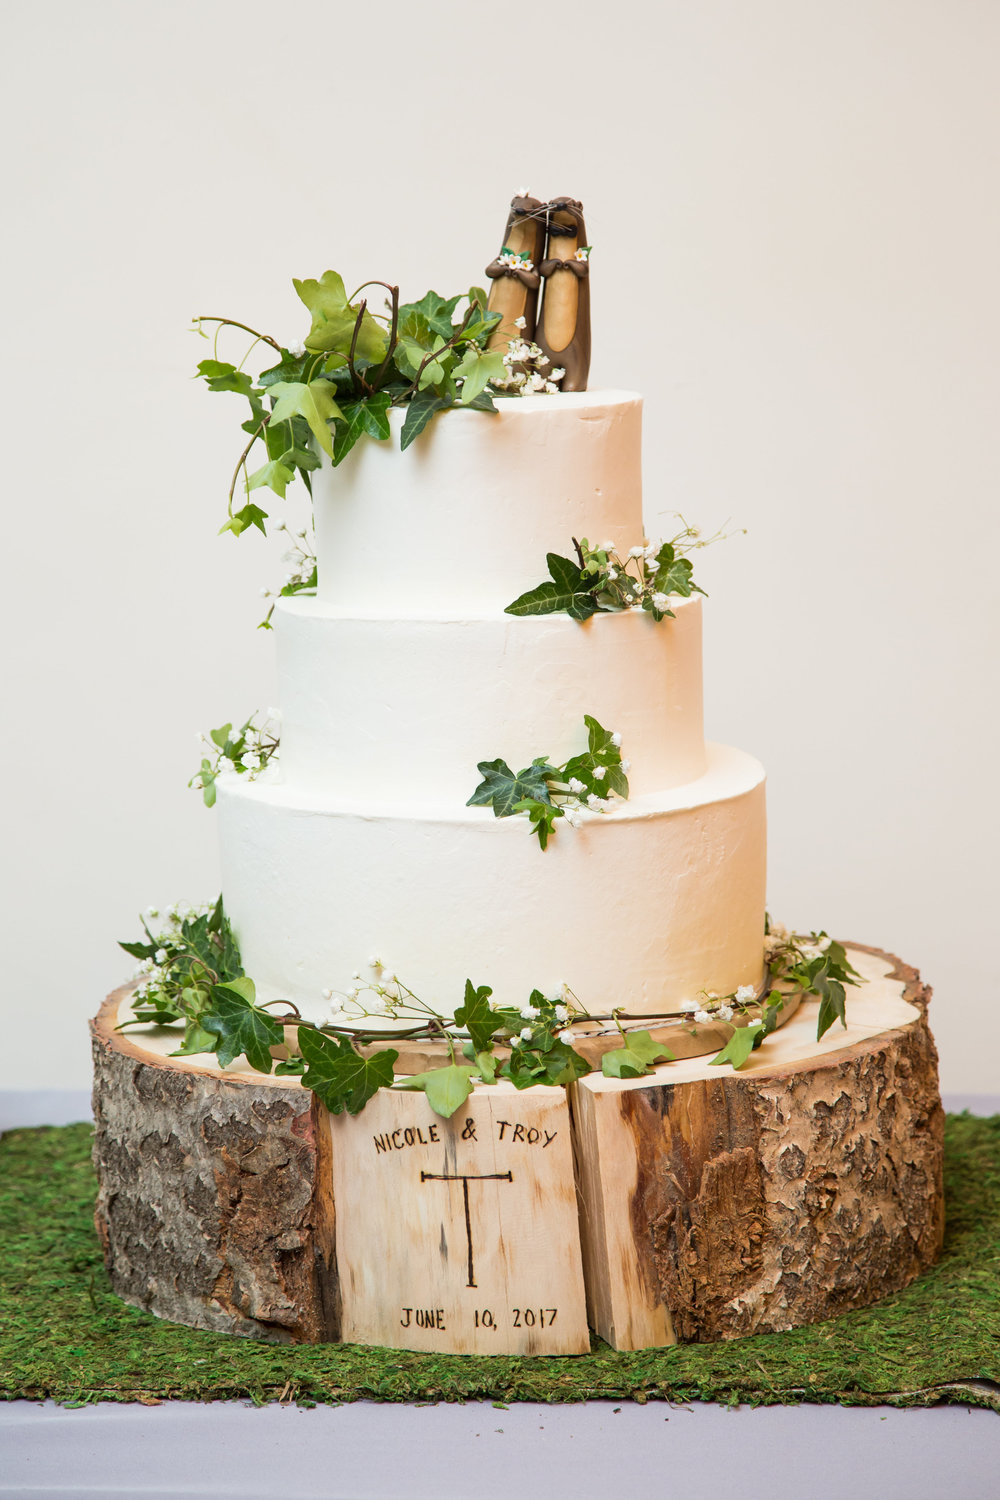 nicole and troy wedding cake 1.jpg